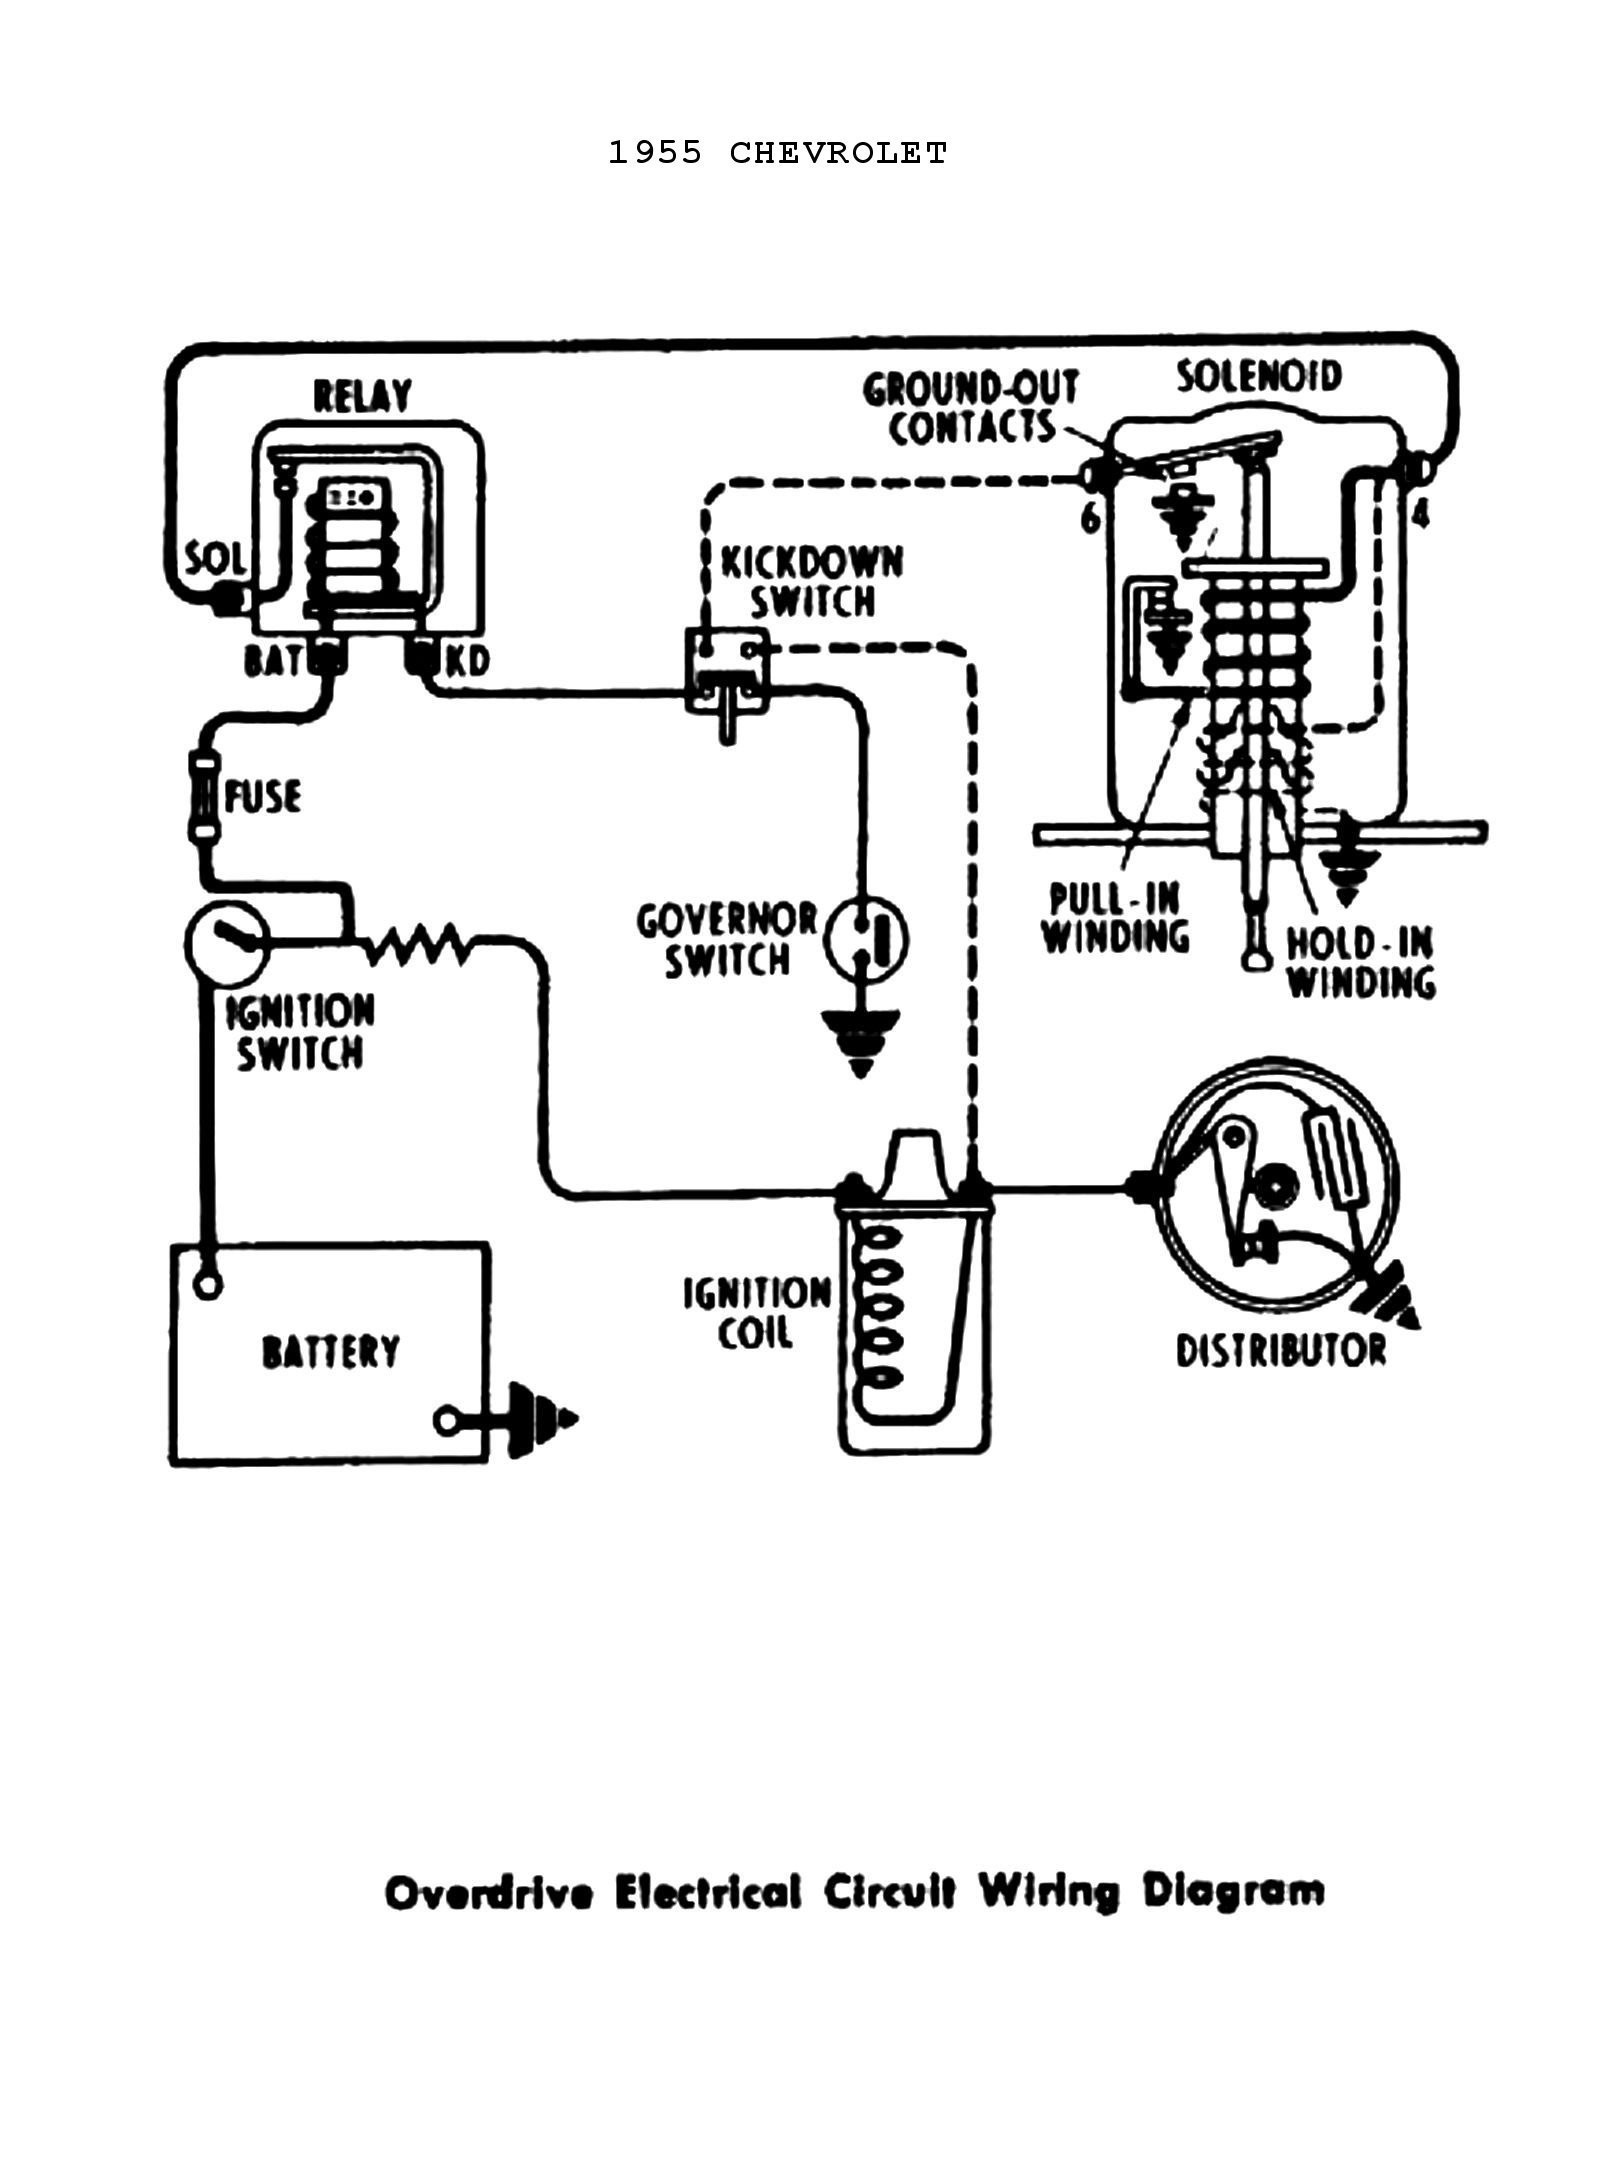 Coil Ignition System Diagram Wiring Diagram the Ignition System Valid Ignition Switch Wiring Of Coil Ignition System Diagram Wiring Diagram the Ignition System Refrence Basic Ignition System